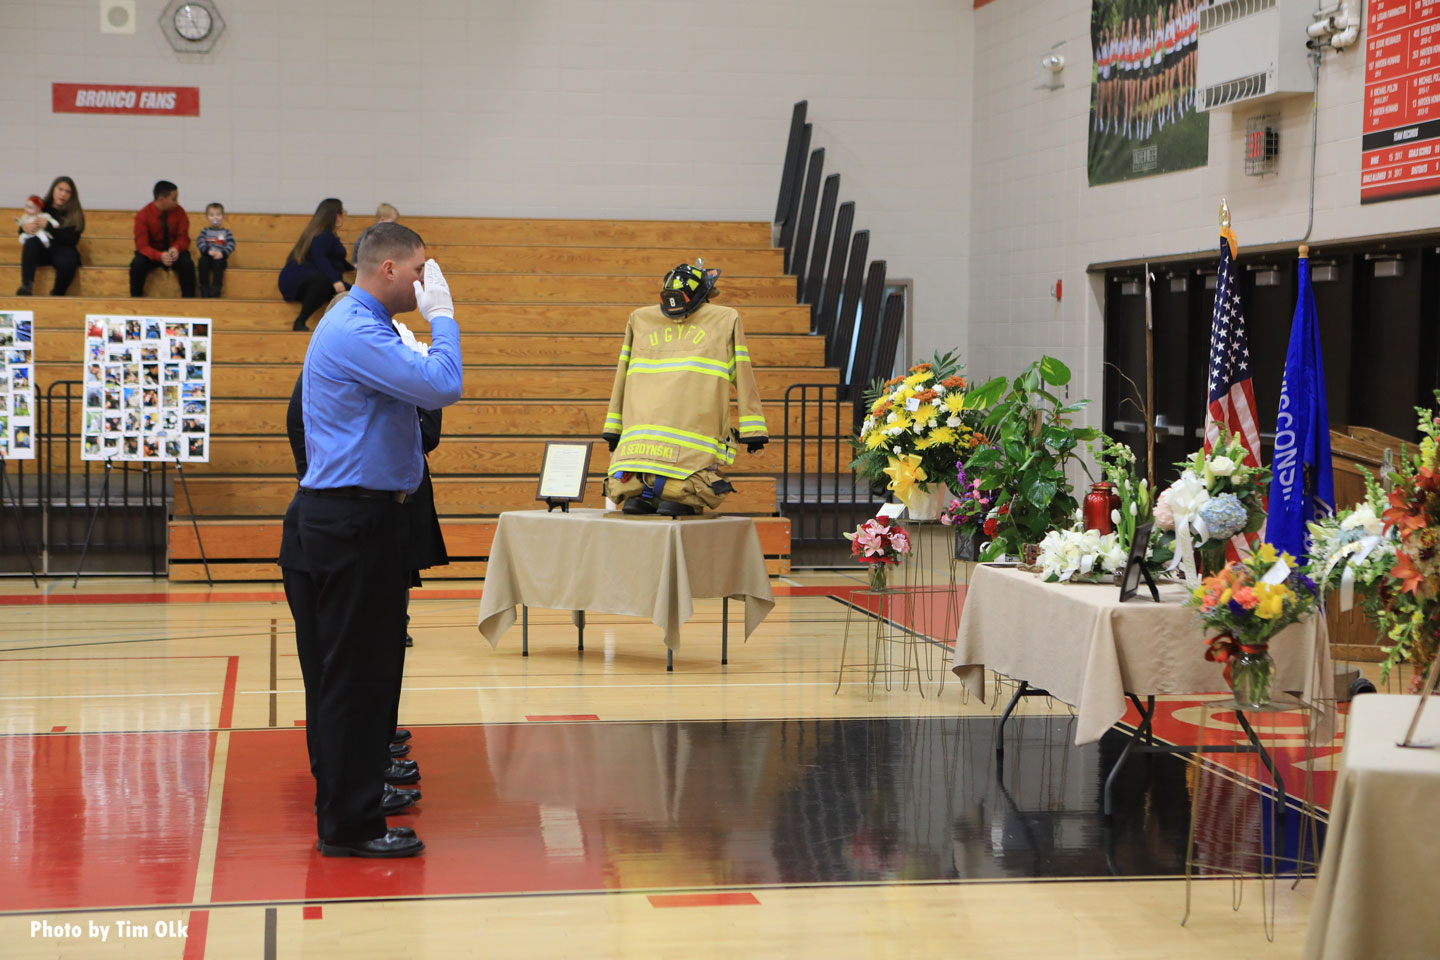 A firefighter salutes his fallen colleague